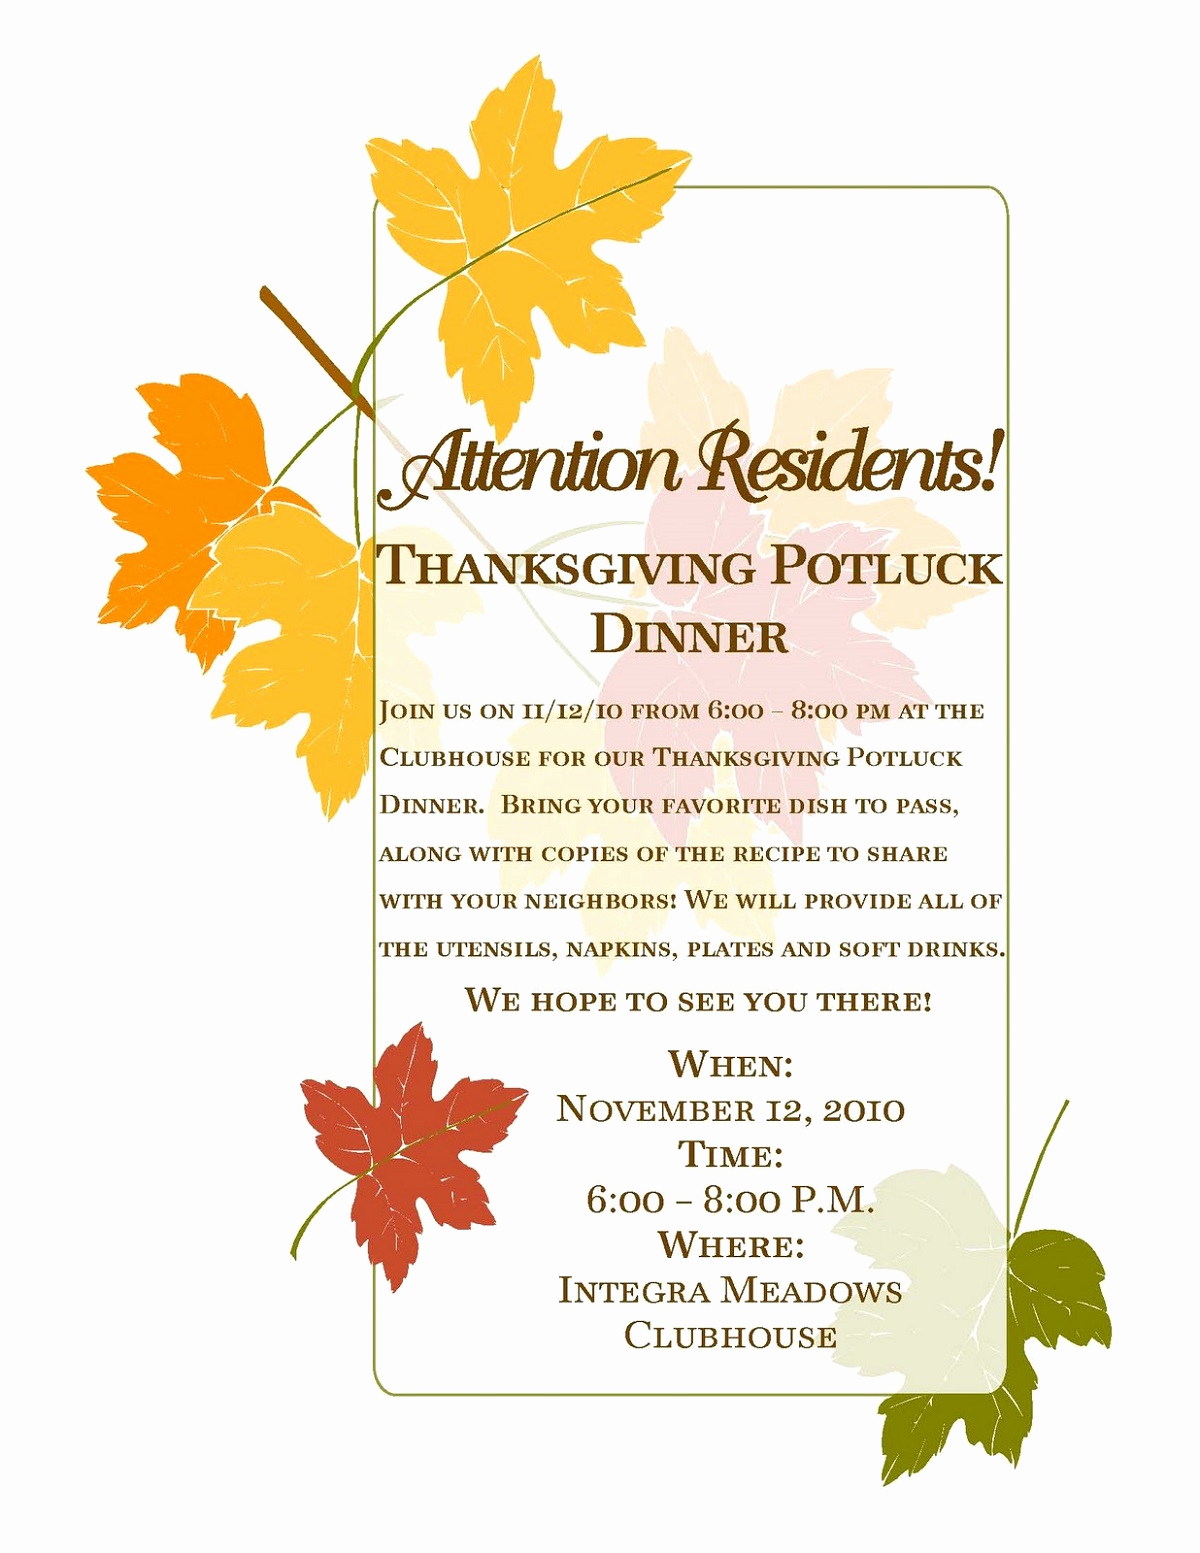 Potluck Invitation Template Free Printable Lovely Potluck Flyer Template Free Printable